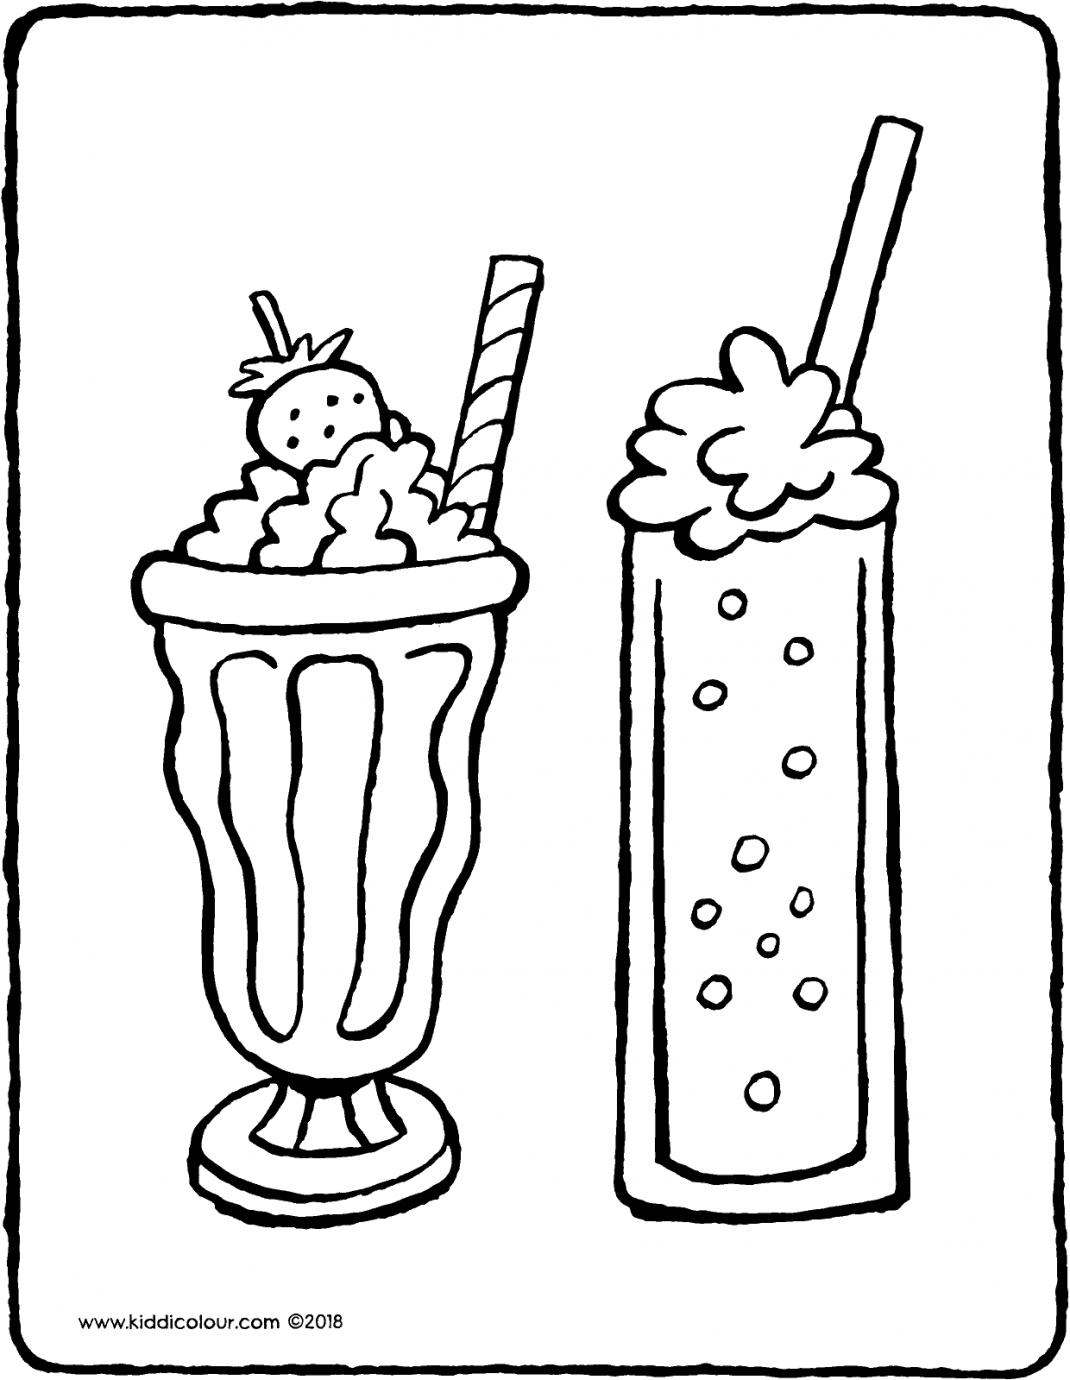 two milkshakes colouring page drawing picture 01V